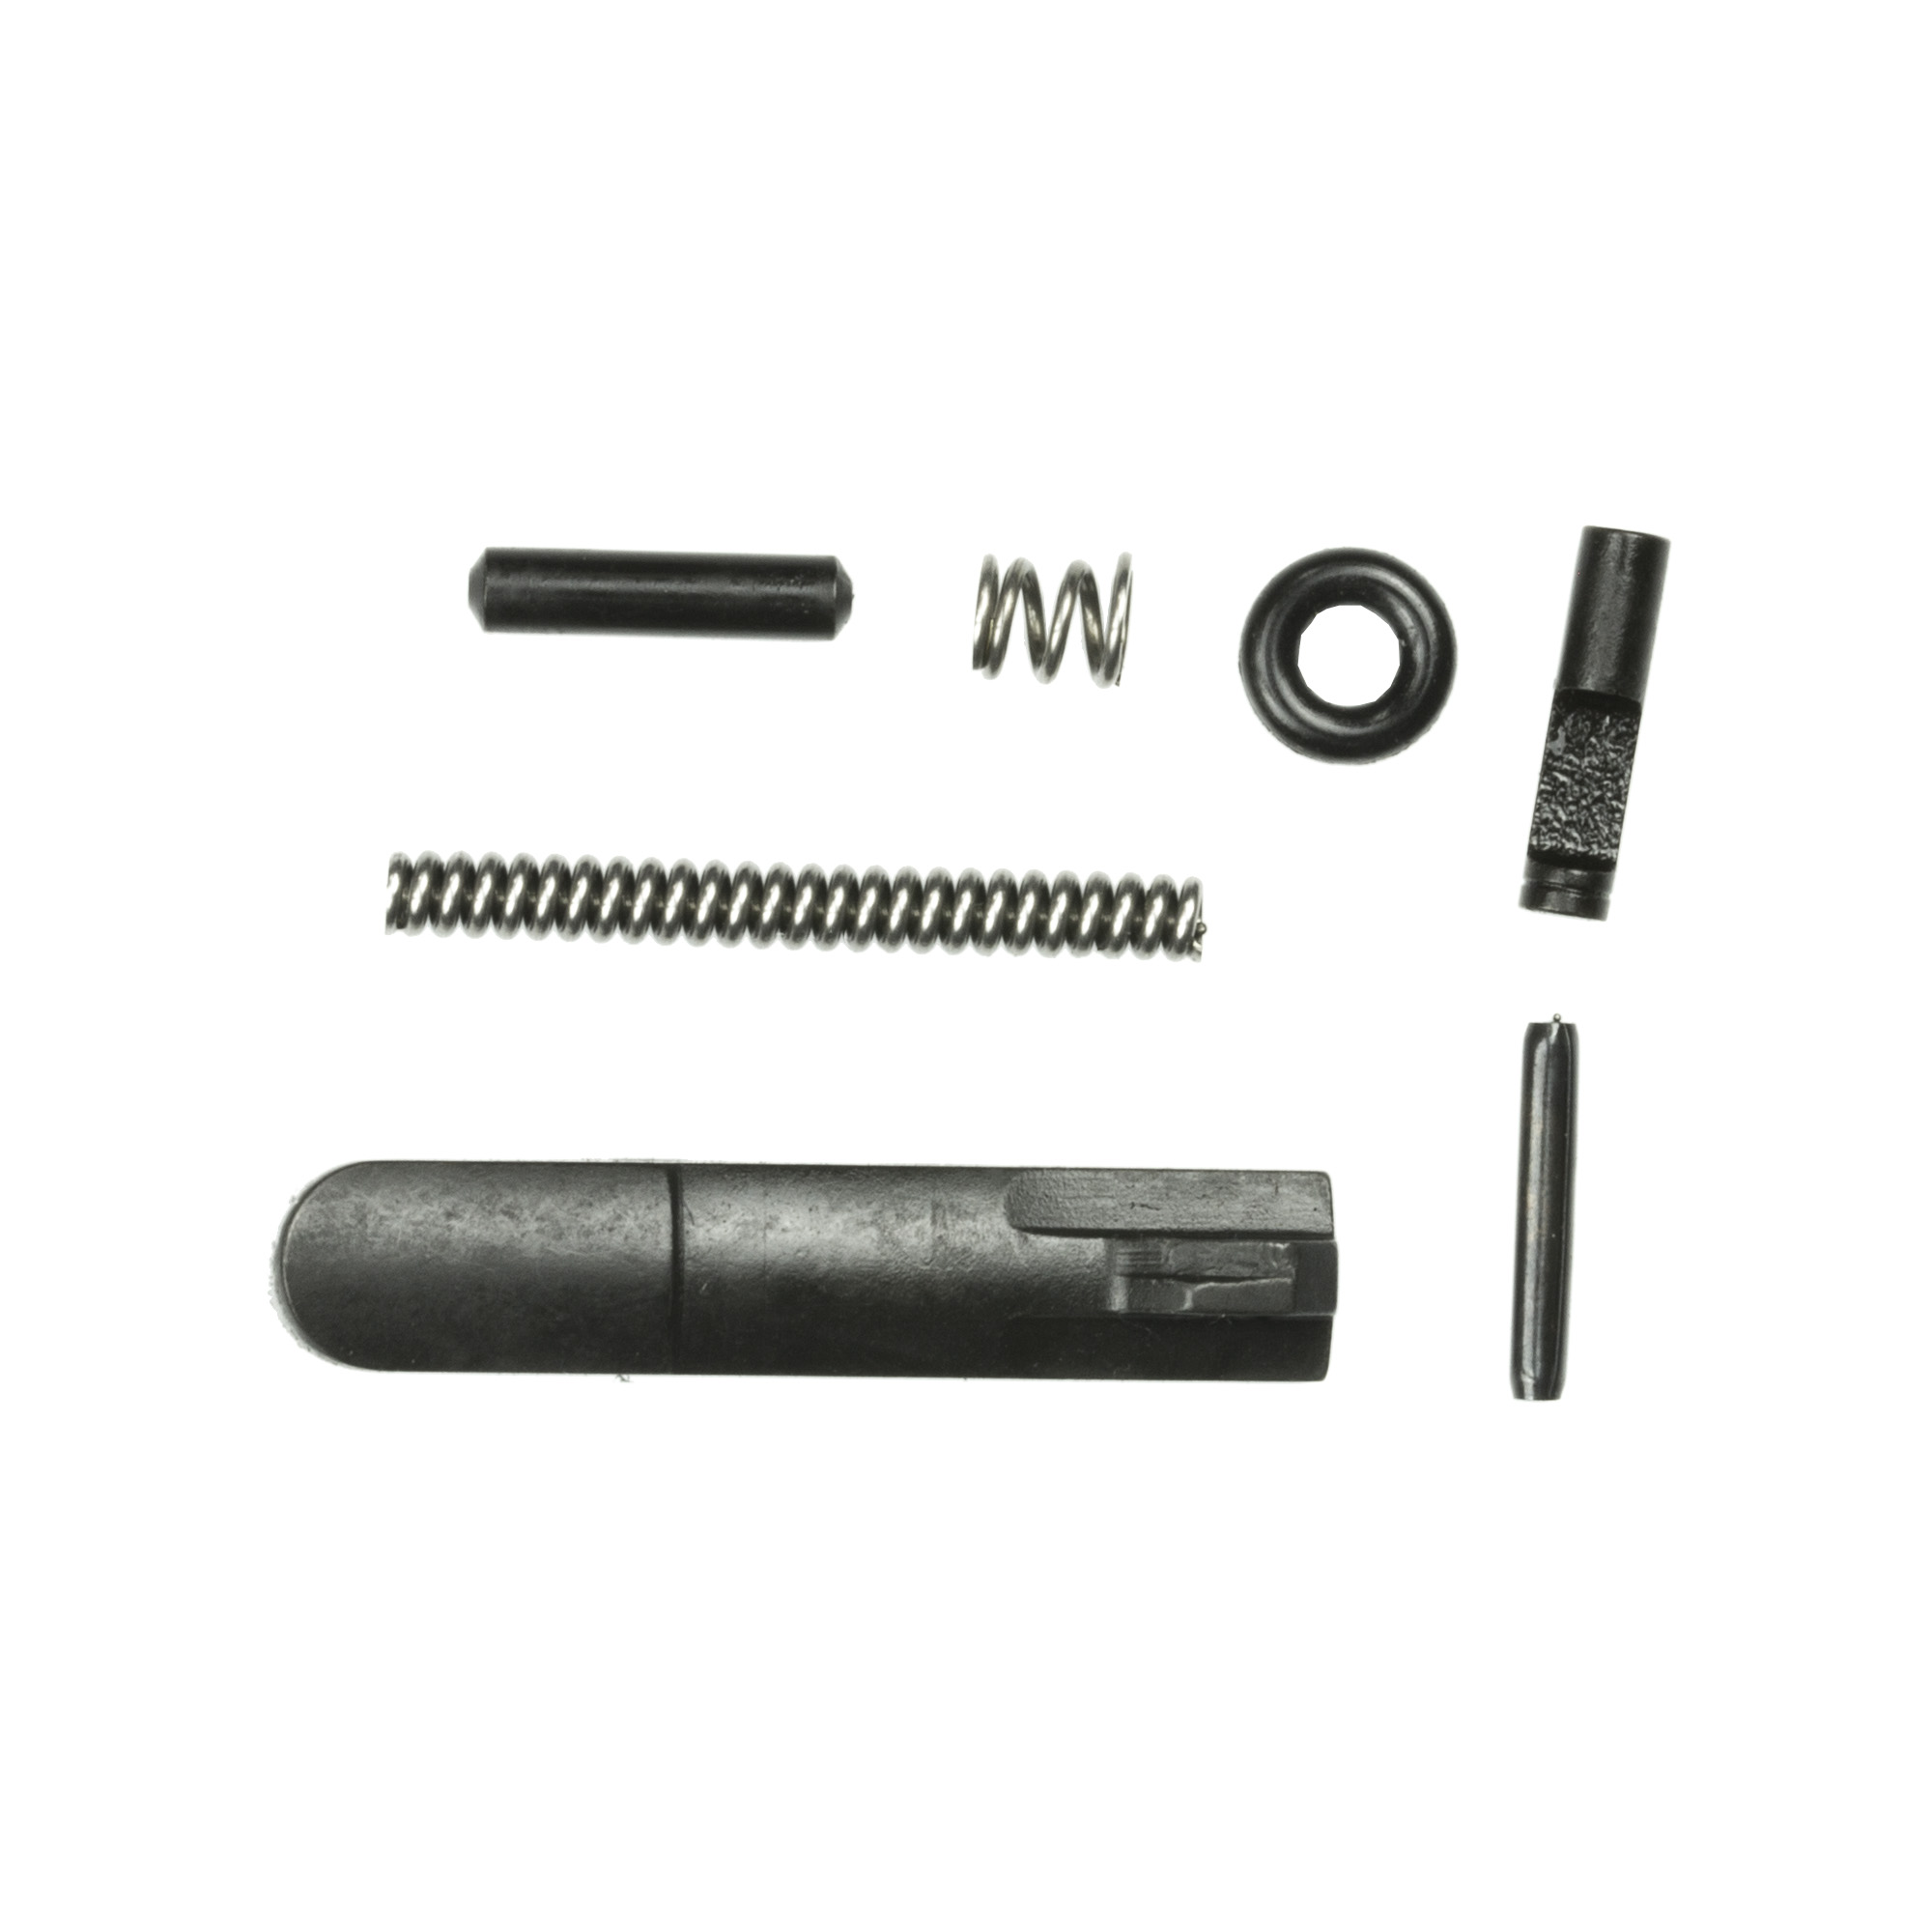 The bolt rebuild kit provides everything you need to rebuild your AR15 bolt.